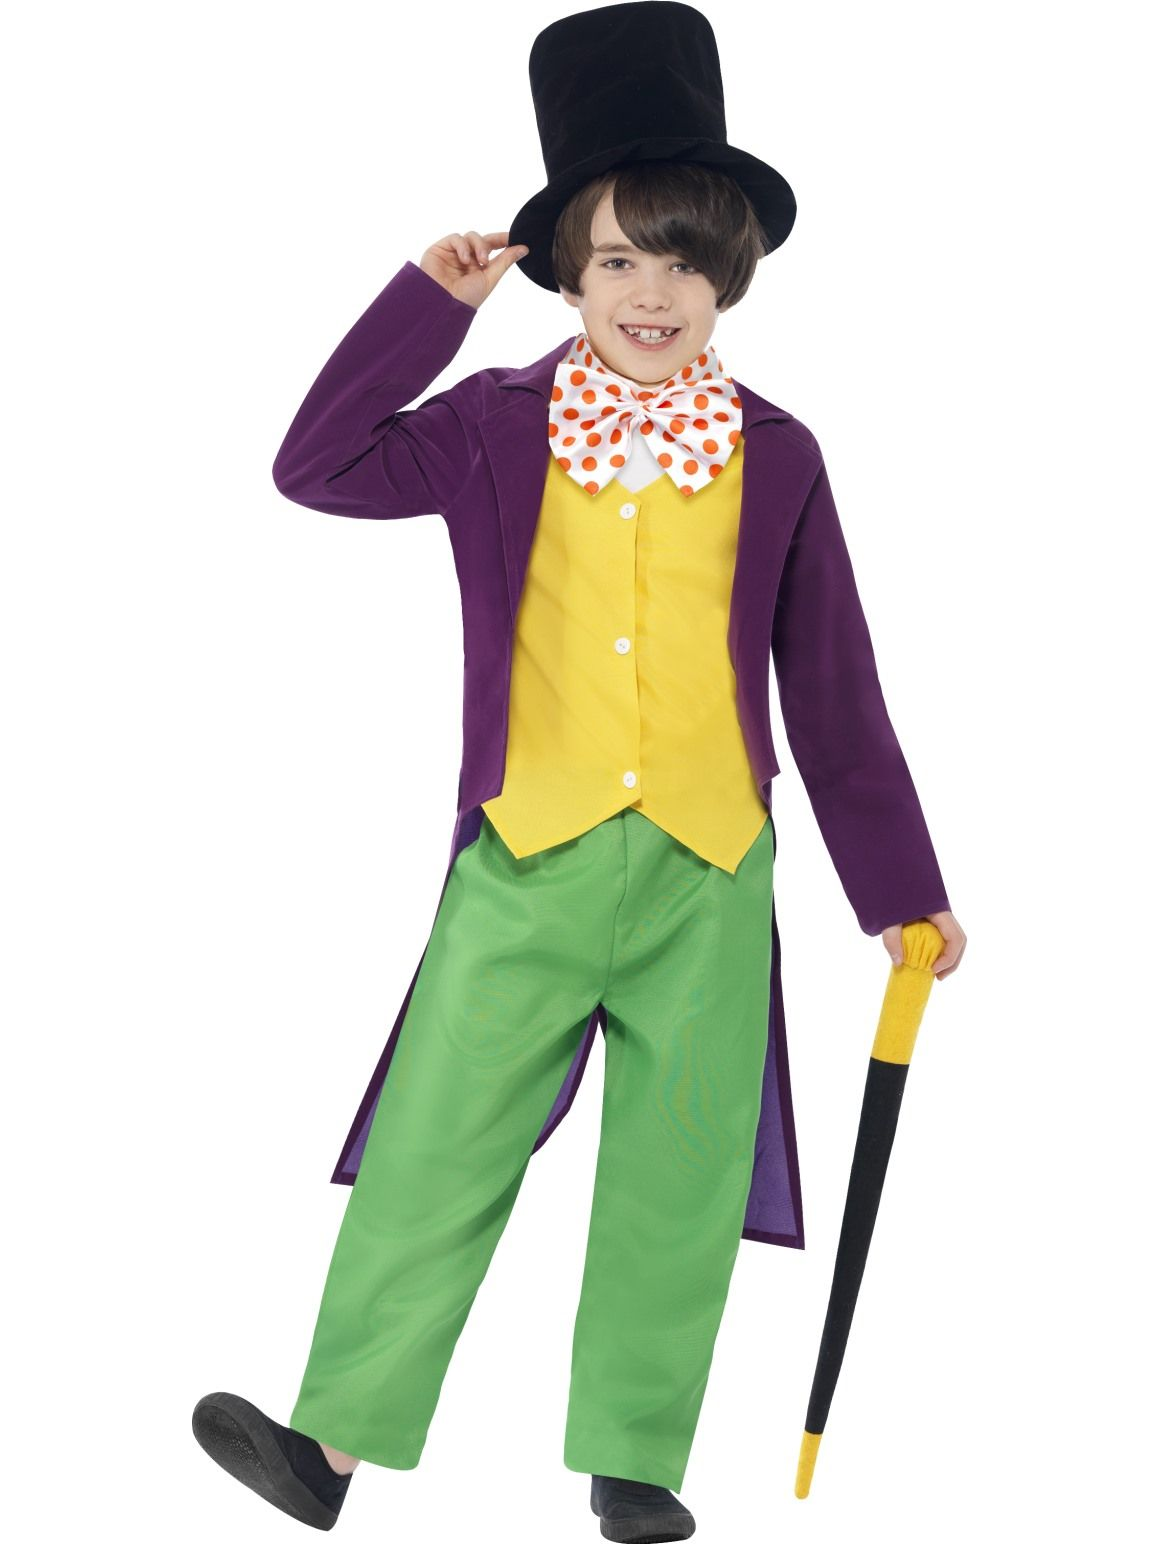 Willy Wonka Roald Dahl Child Costume  - Buy Online Only